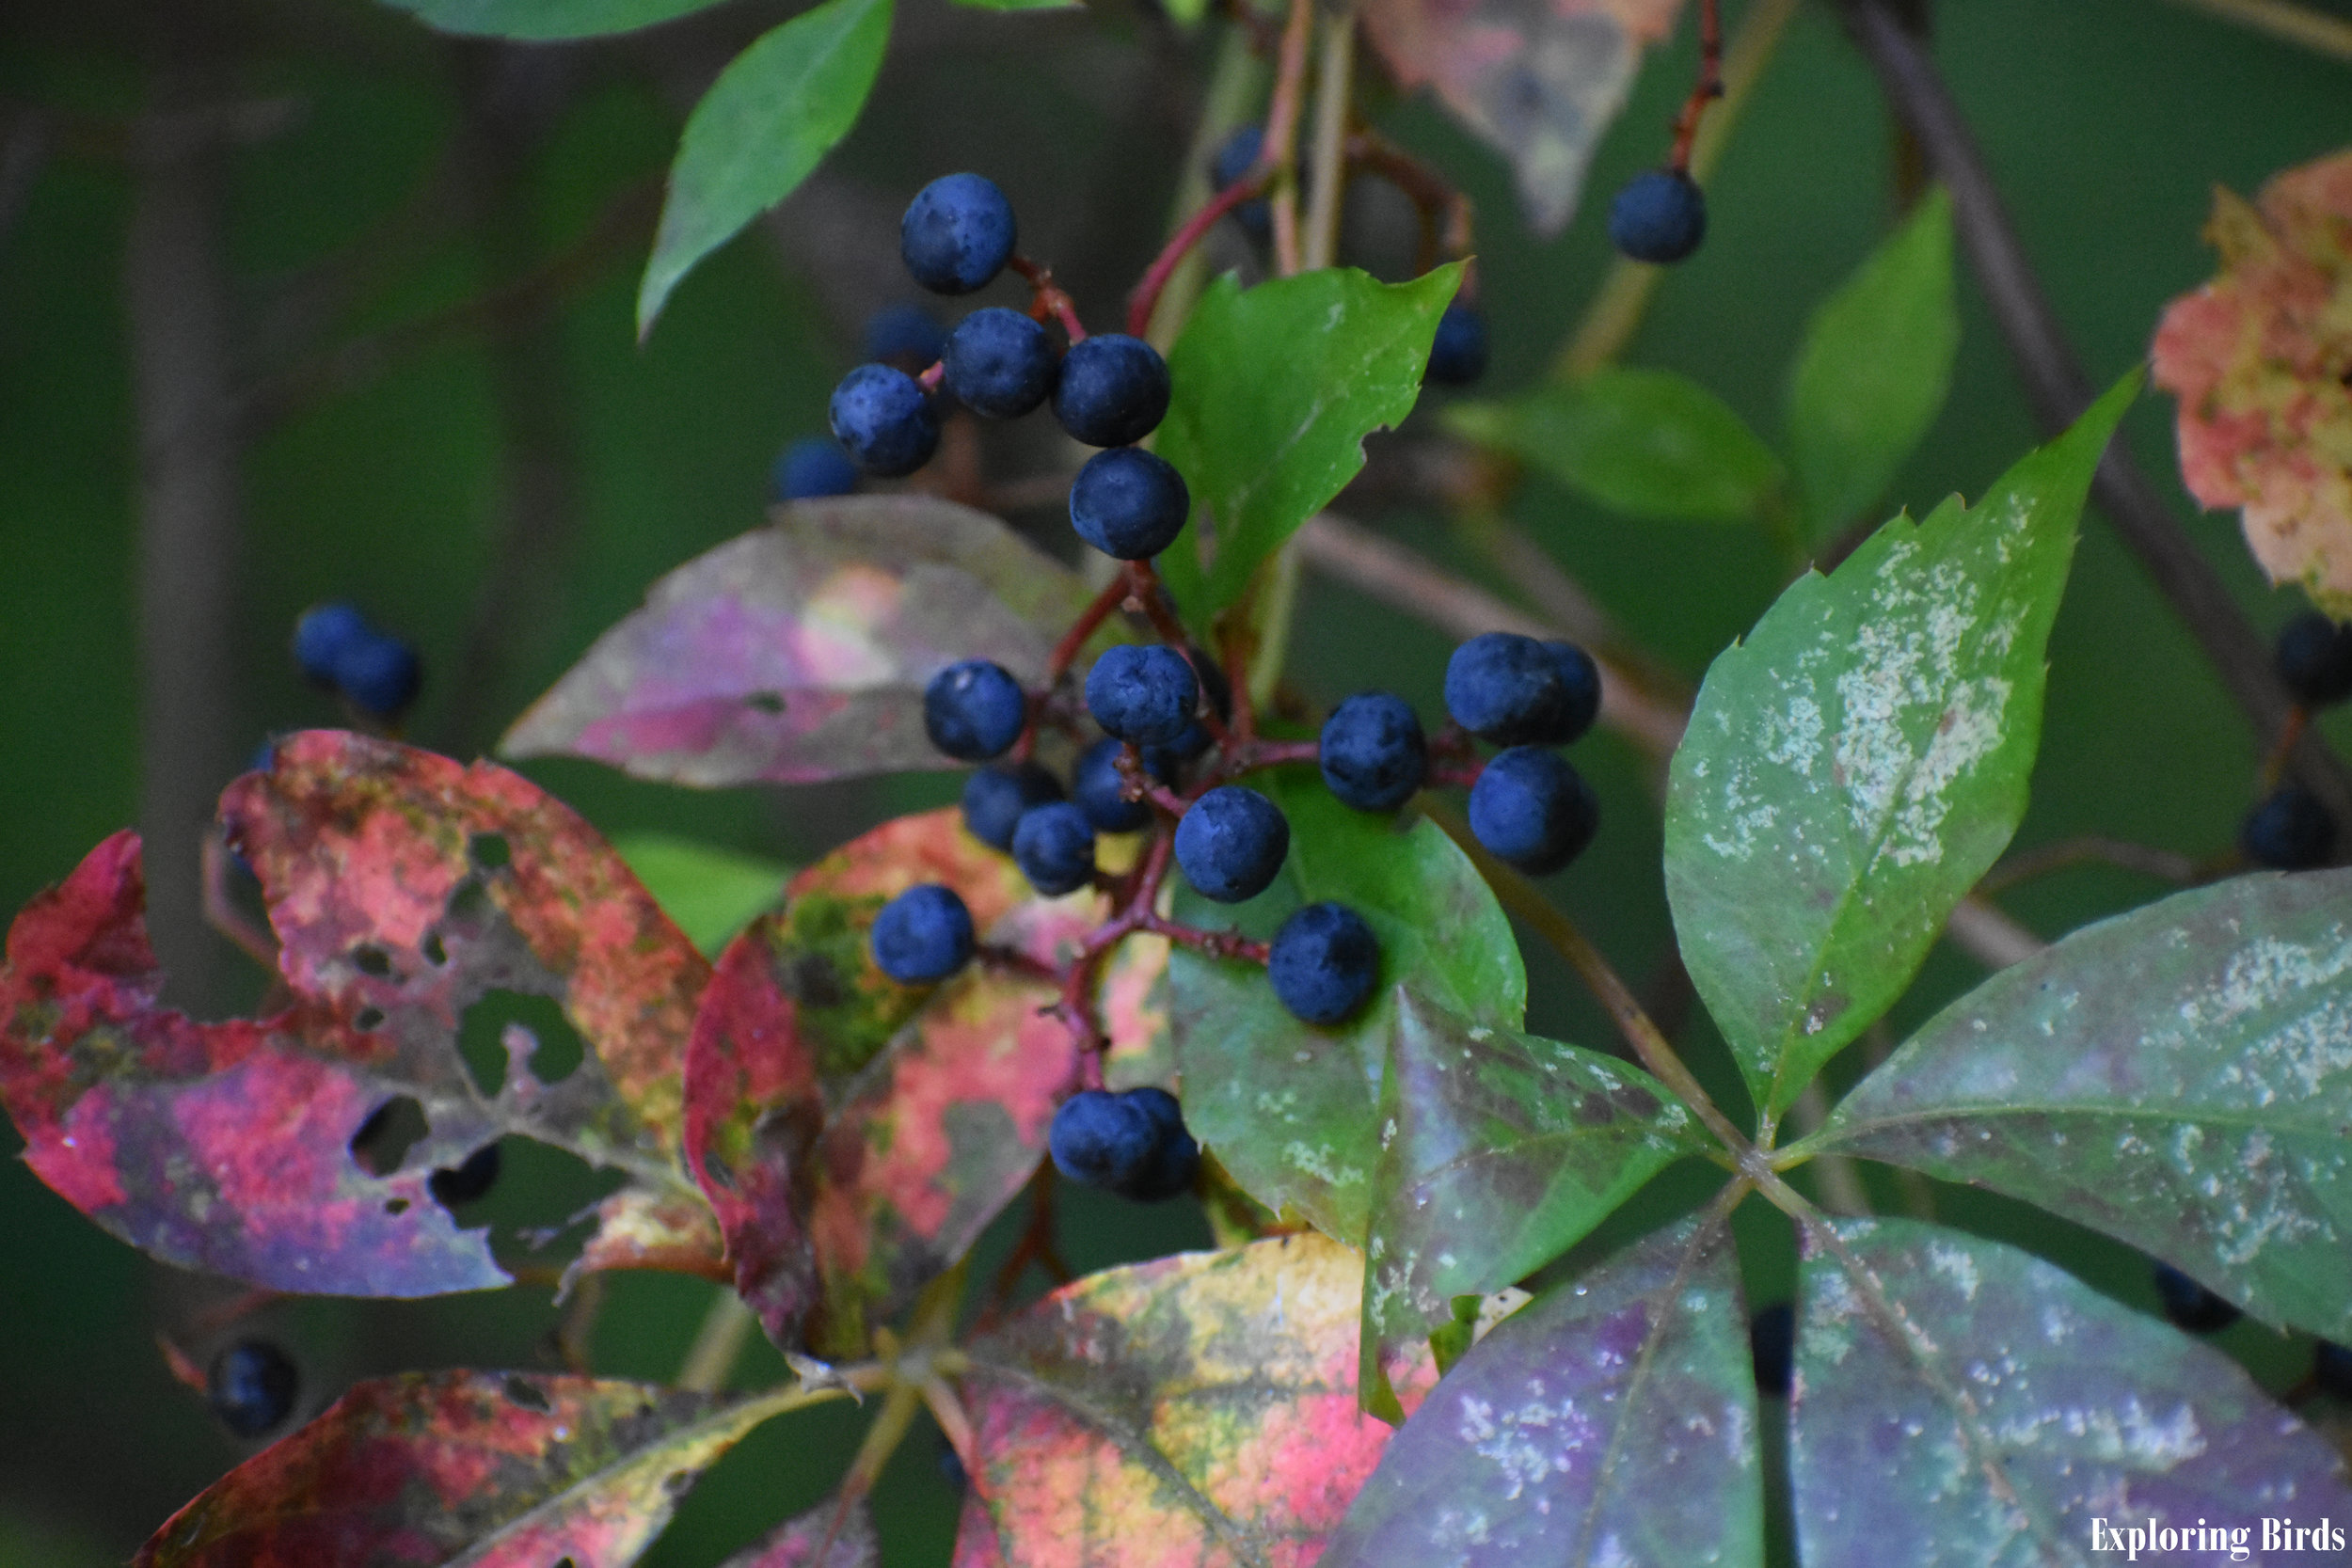 Virginia Creeper berries are eaten by Scarlet Tanager